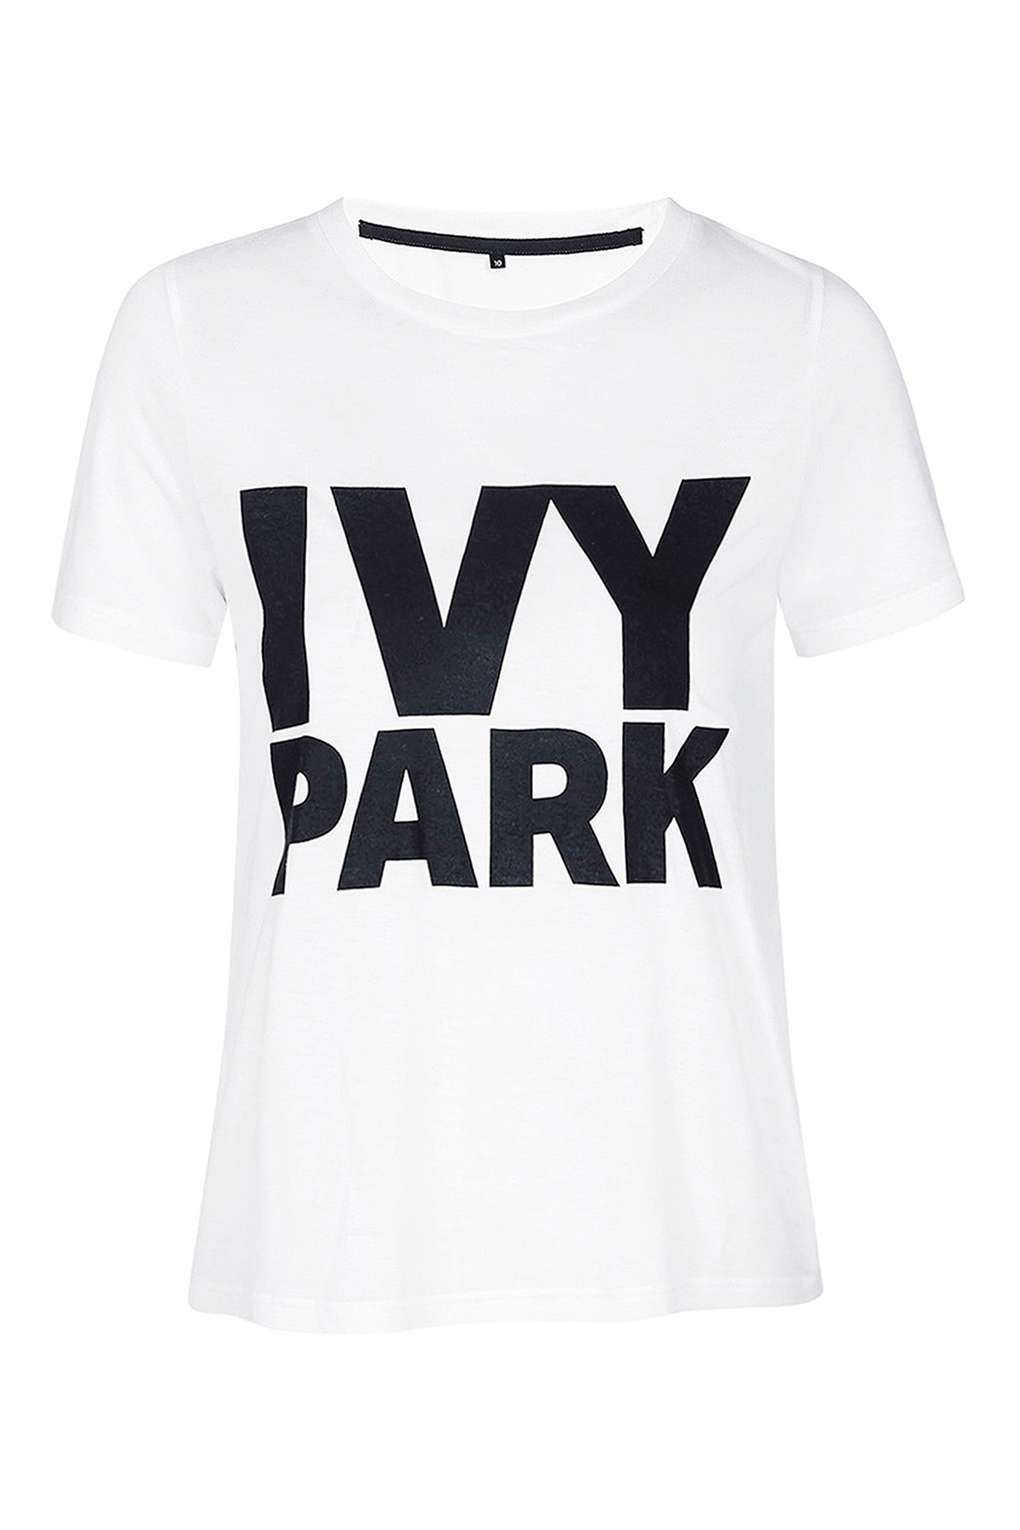 Topshop Womens Logo Crew Neck T-Shirt by Ivy Park -